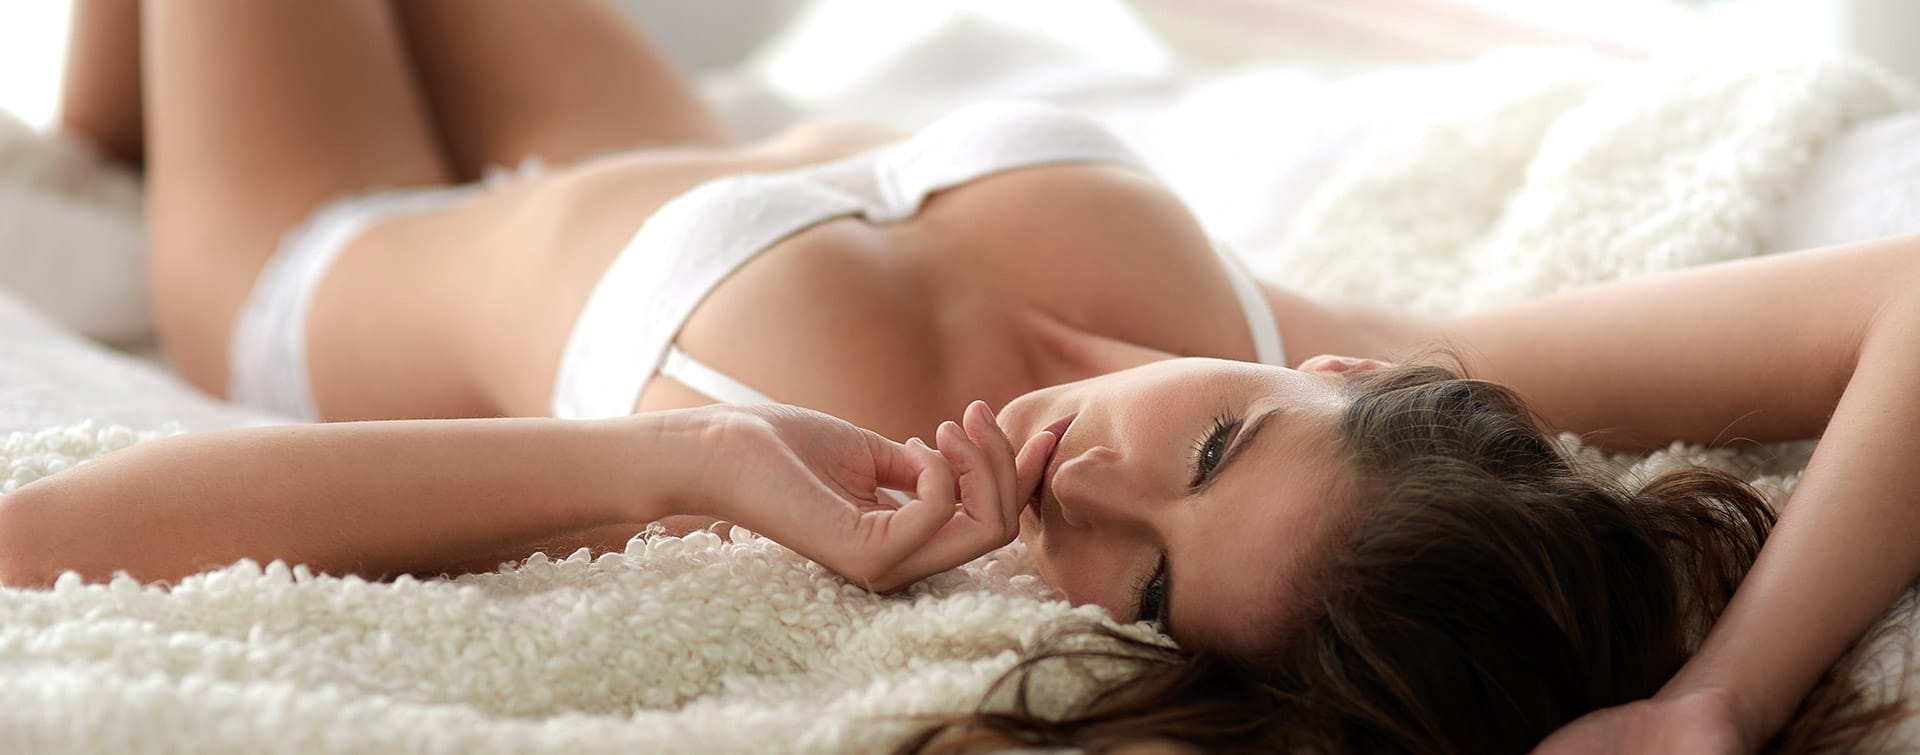 Breast Revision Surgery, Maine Plastic Surgery Center & Spa